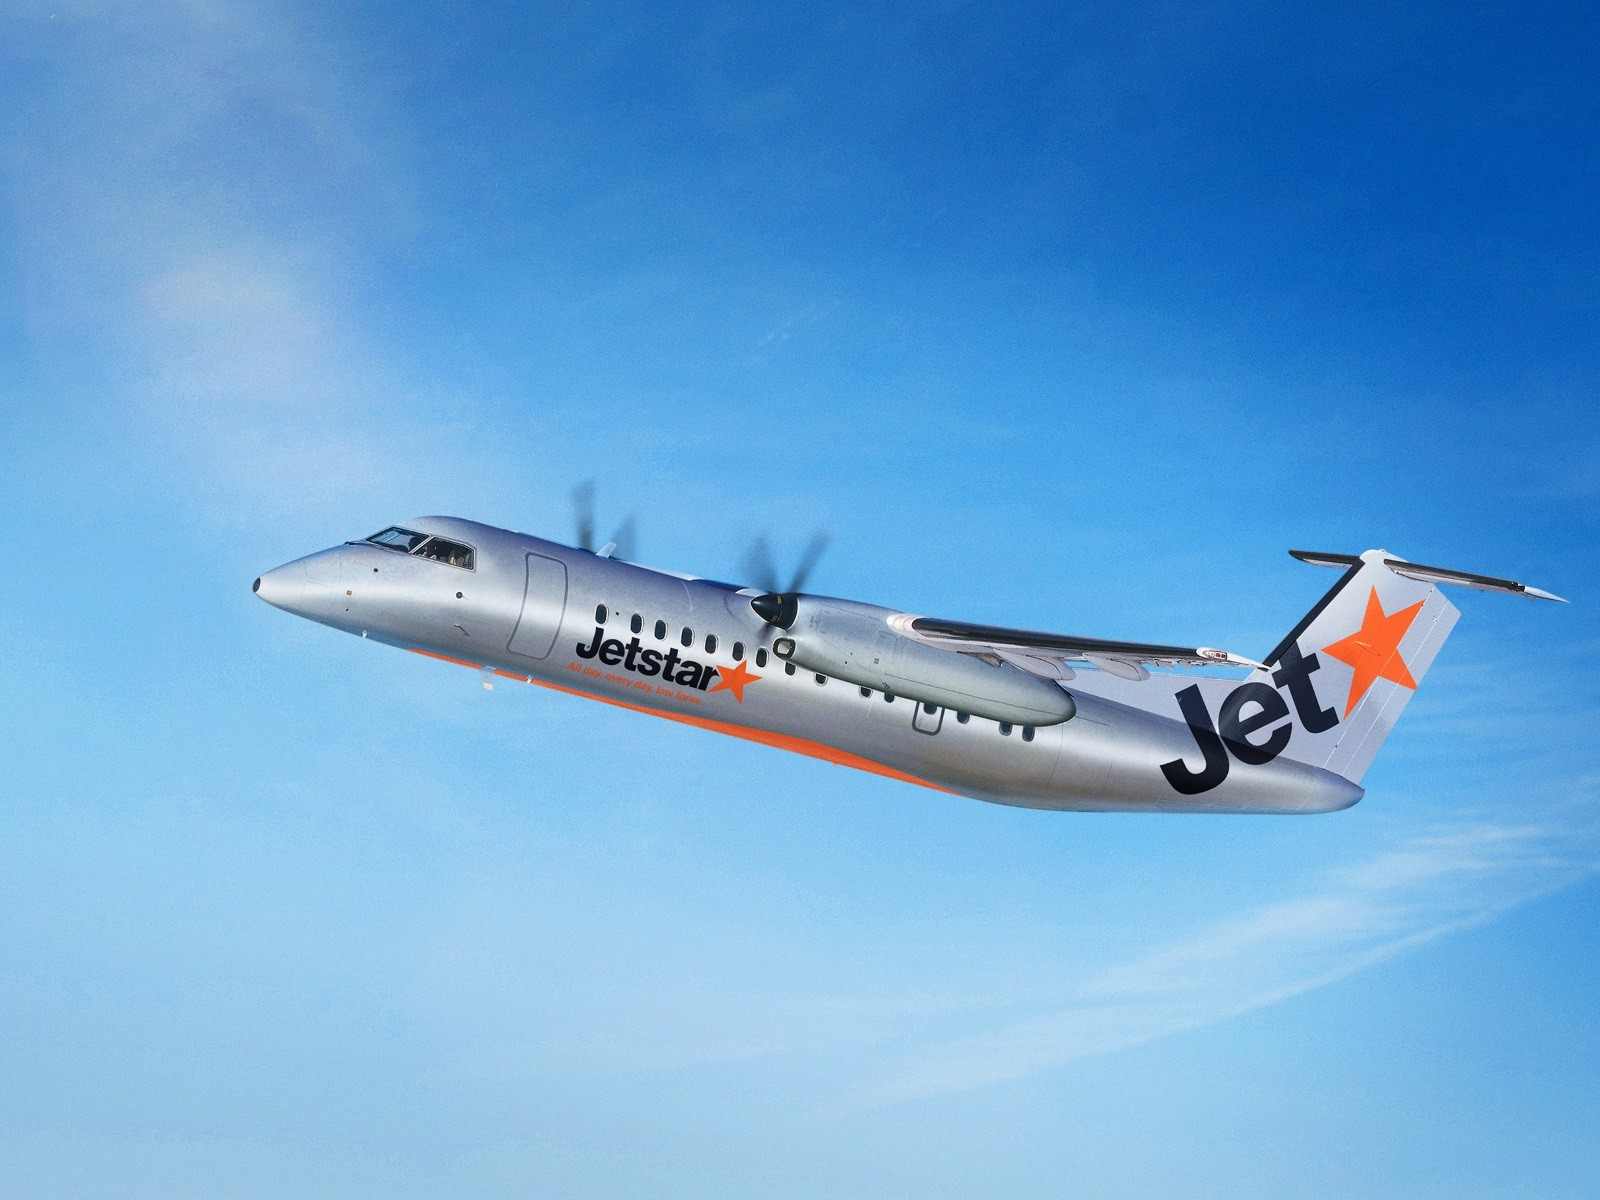 Bombardier Q300 in Jetstar livery